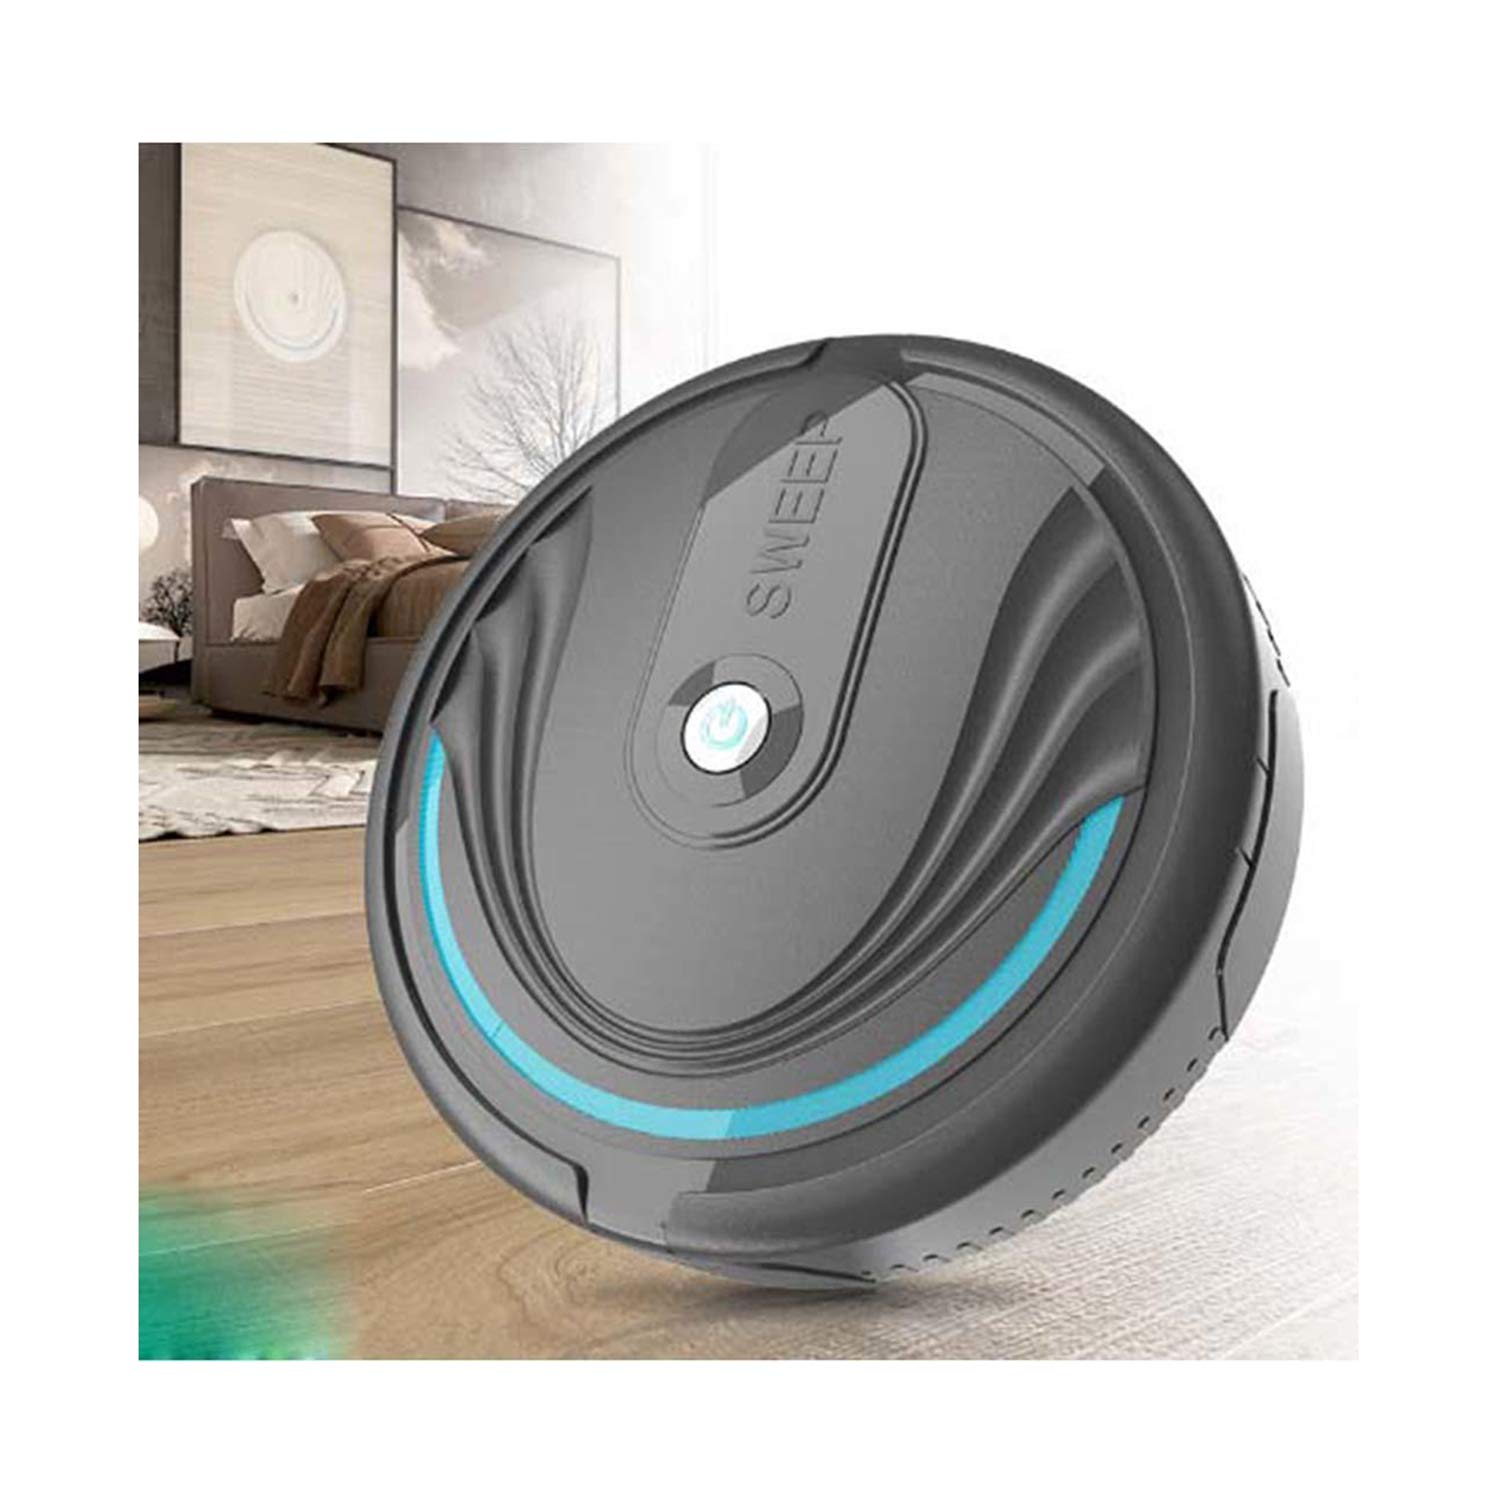 Yuniole Robot Vacuum Robot Vacuum Cleaner, Super-Strong Suction&Ultra Slim, Intelligent Sweeping Robot Automatic Self-Charging Robotic Vacuum for Cleaning, Easy Schedule Cleaning Handheld Vacuums by Yuniole